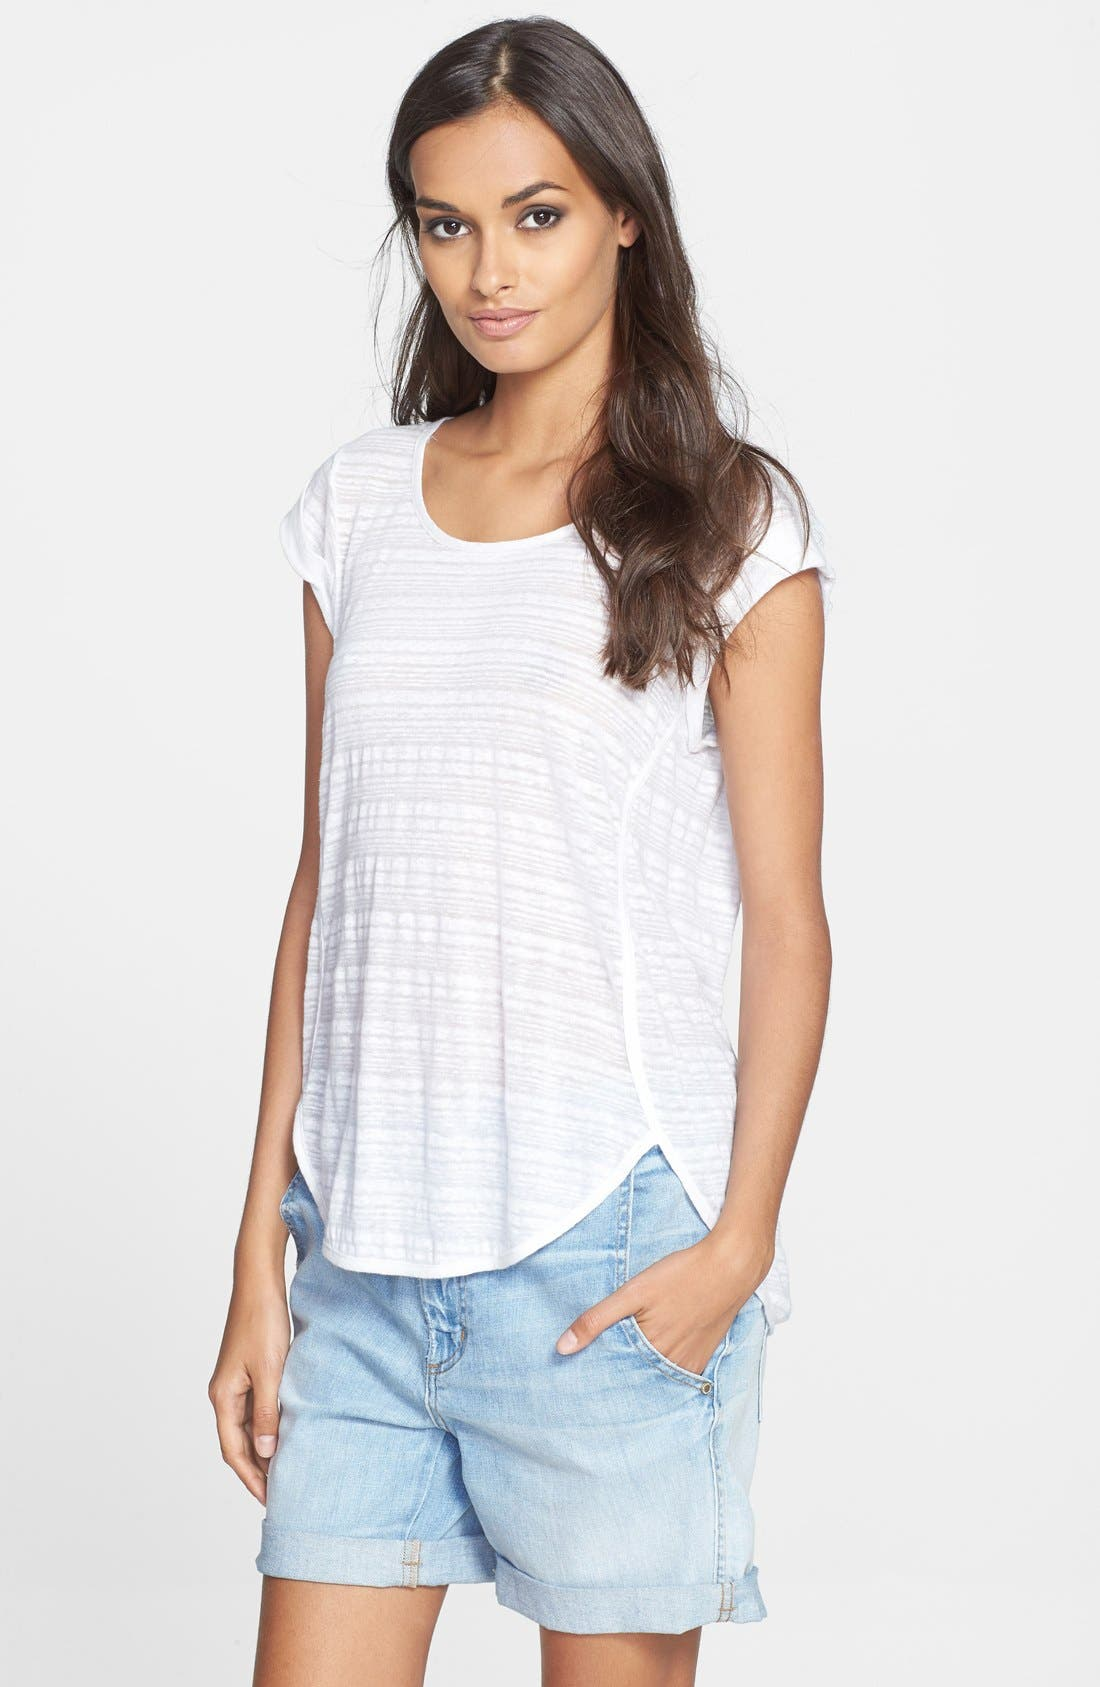 Alternate Image 1 Selected - MARC BY MARC JACOBS 'Eloise' Ombré Jersey Muscle Tee